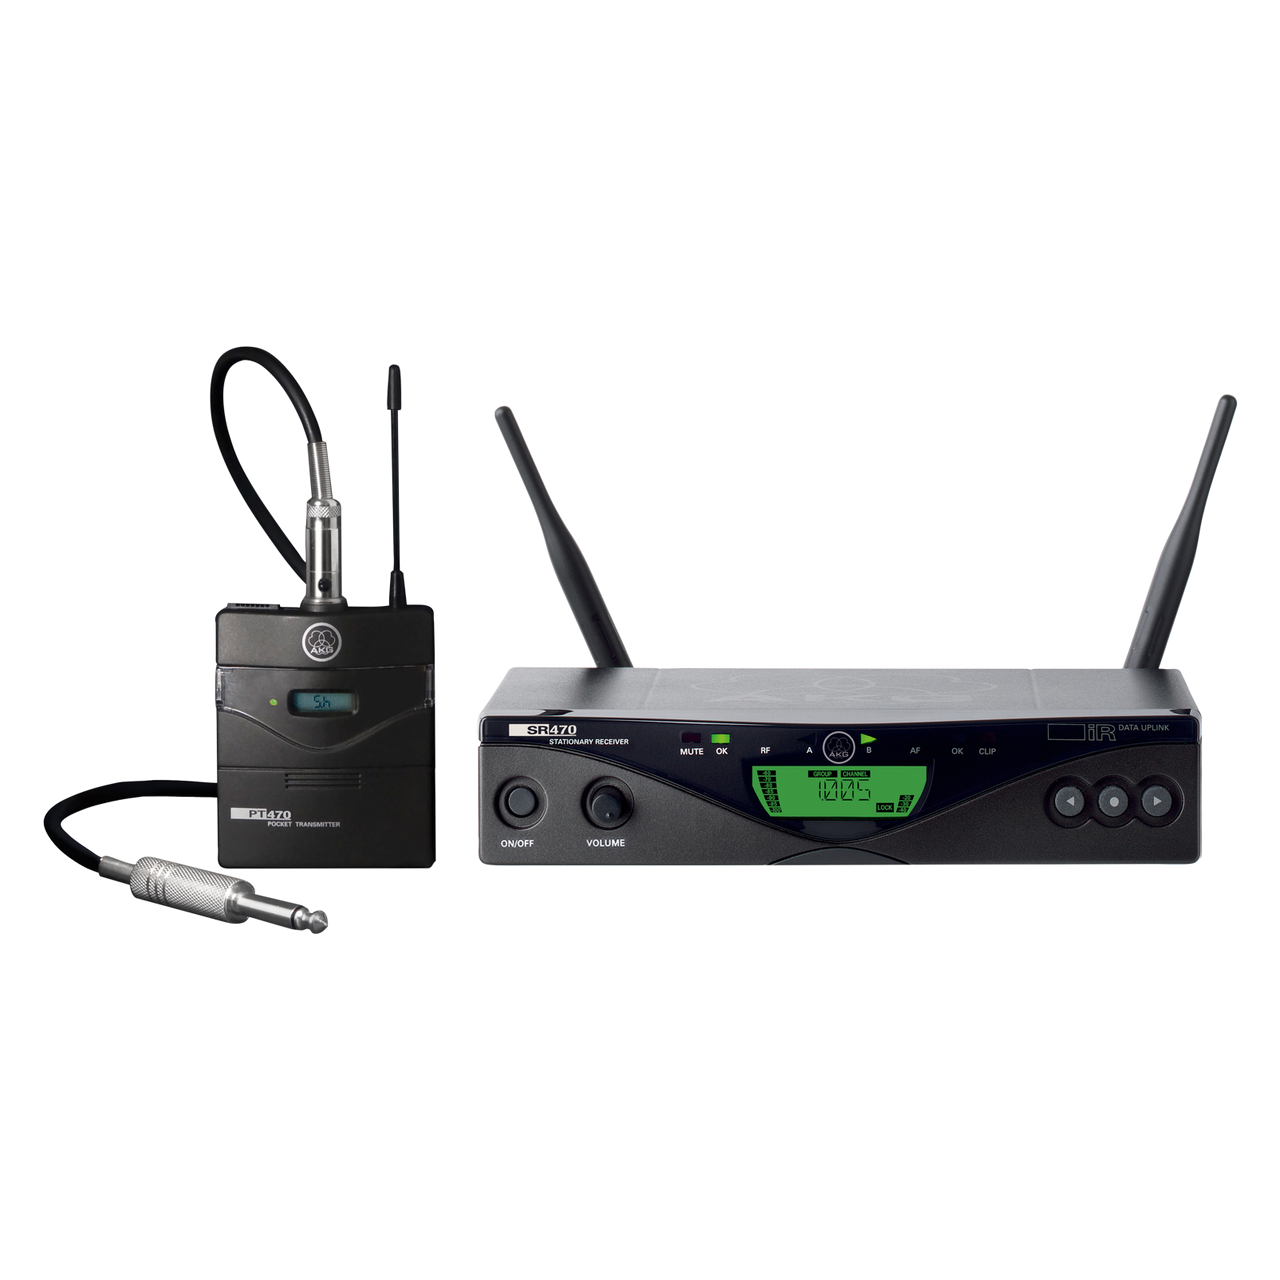 Access Instr akg 3307h00380 - wms470 instr set bd8 50mw - eu/us/uk wireless bodypack  microphone system, sr470 stationary receiver, pt470 bodypack transmitter,